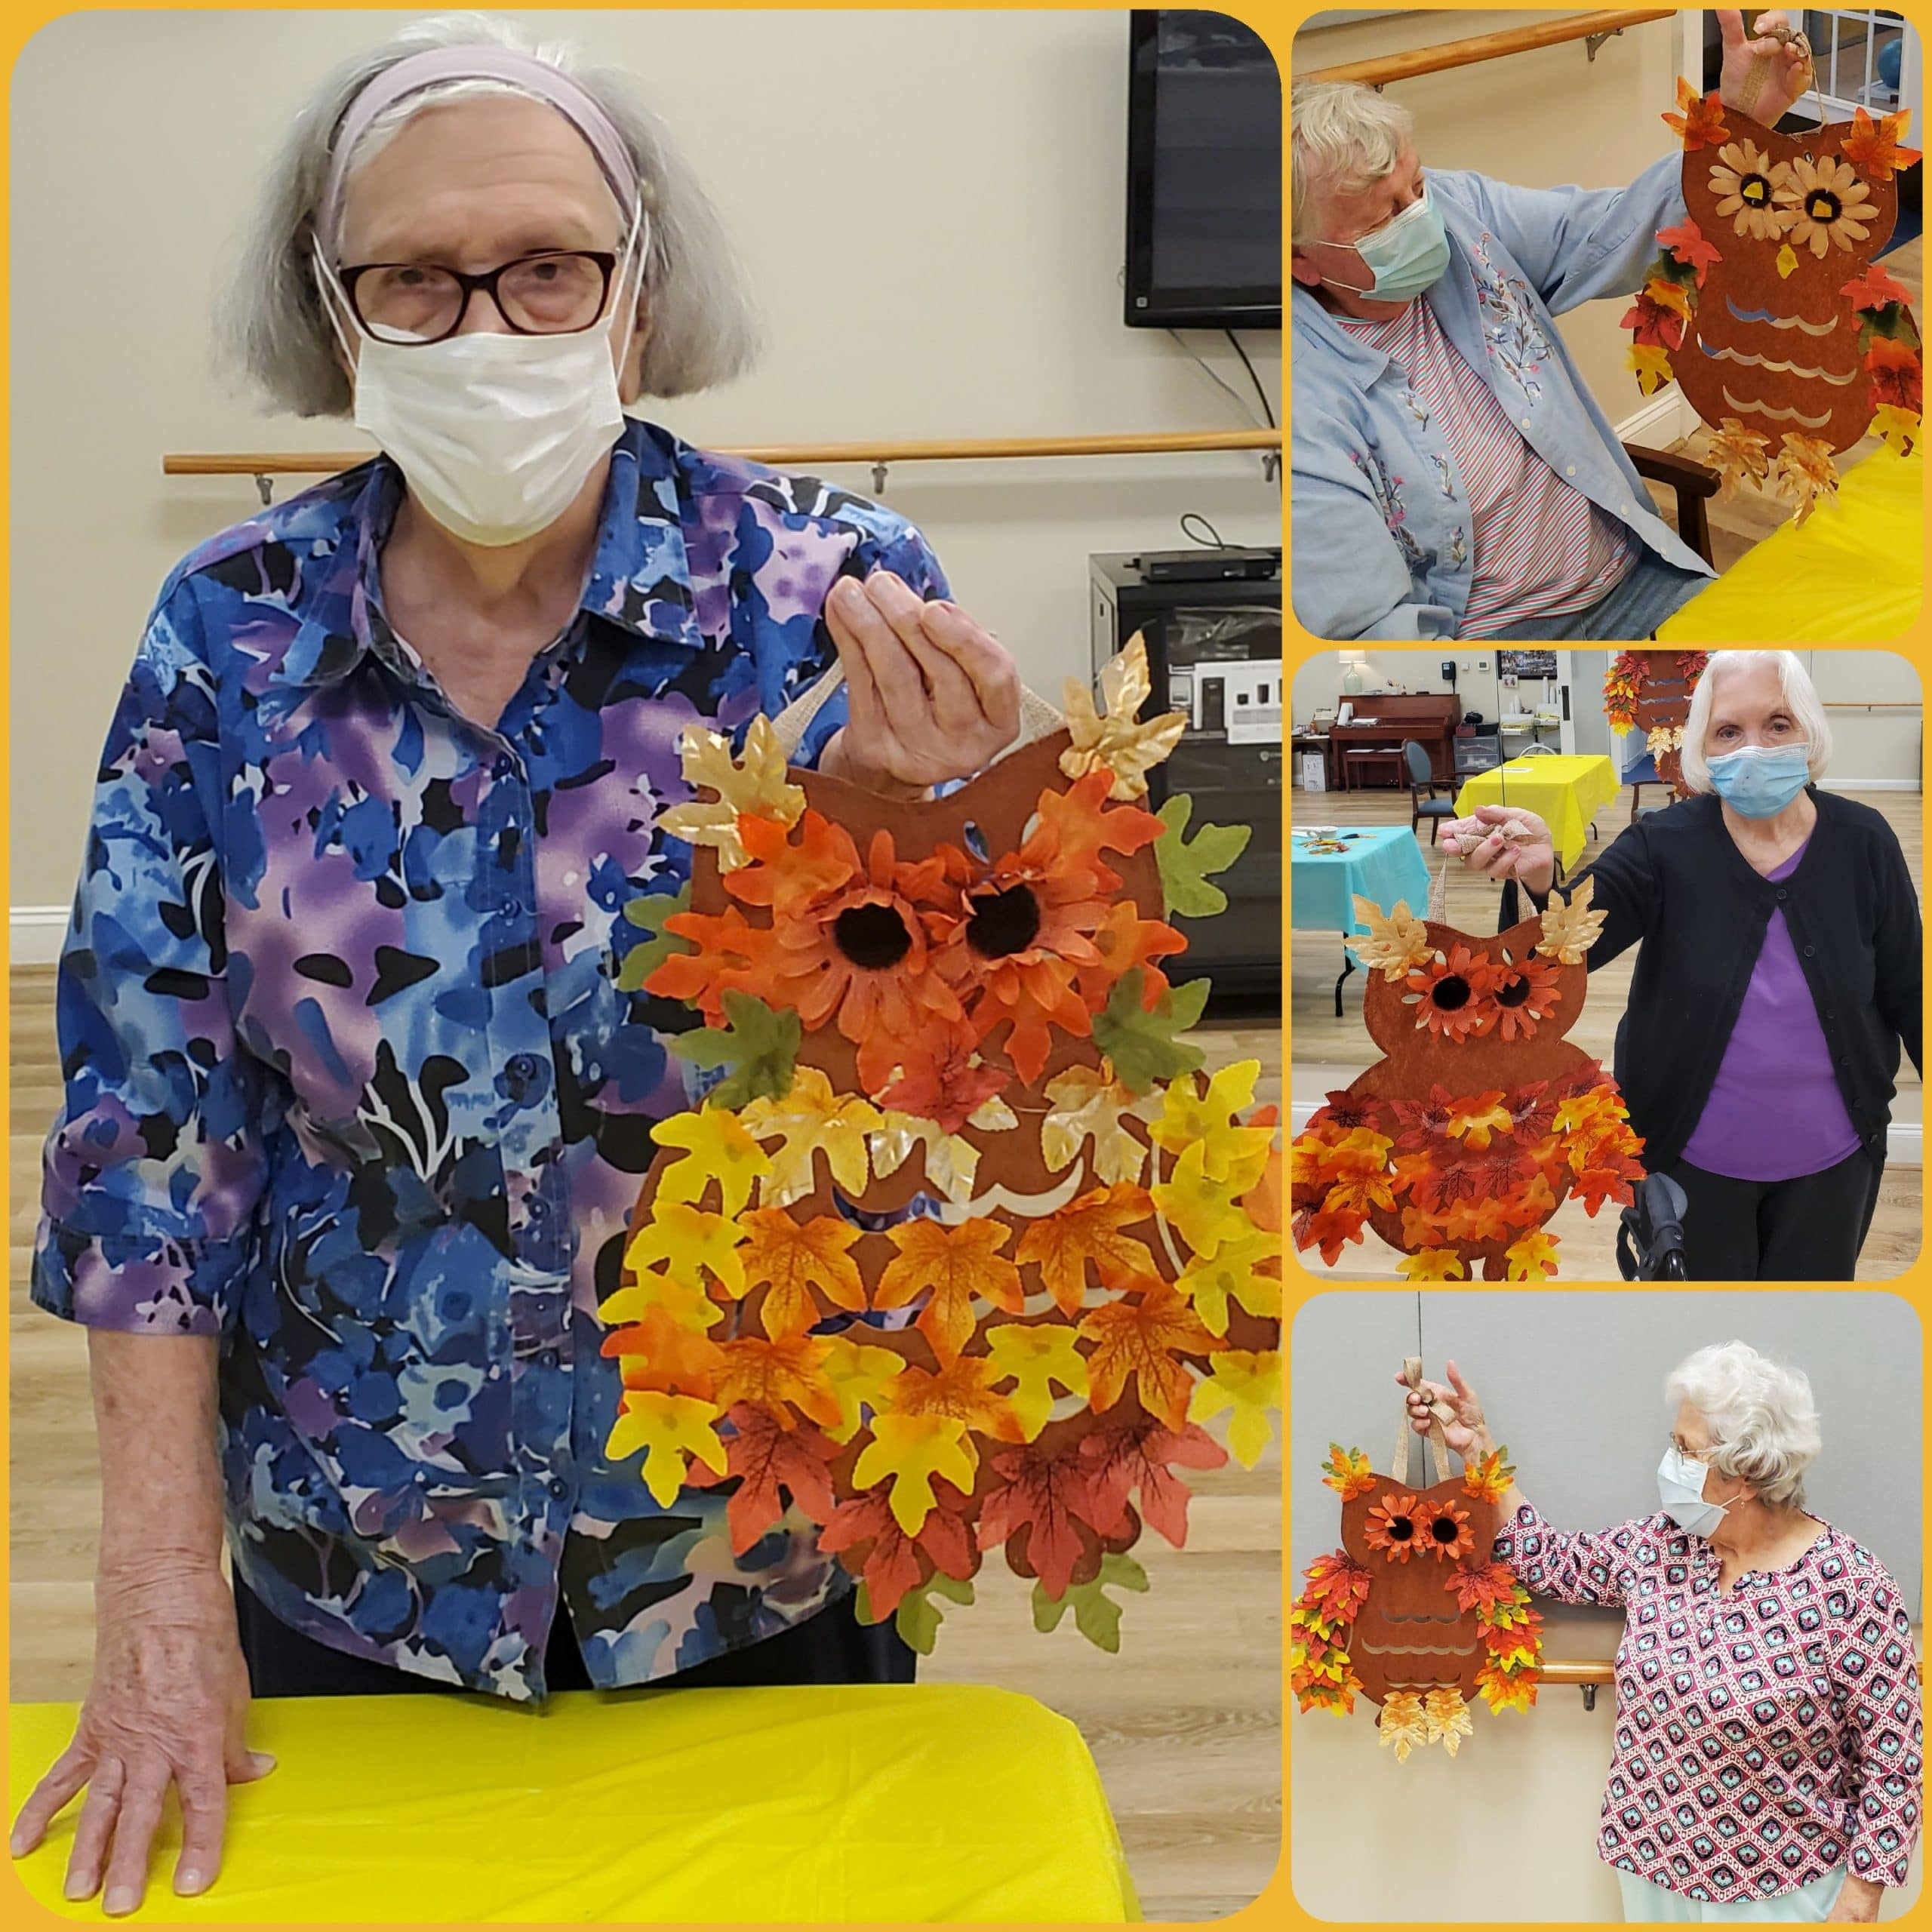 Fall Owl decoration made by woman